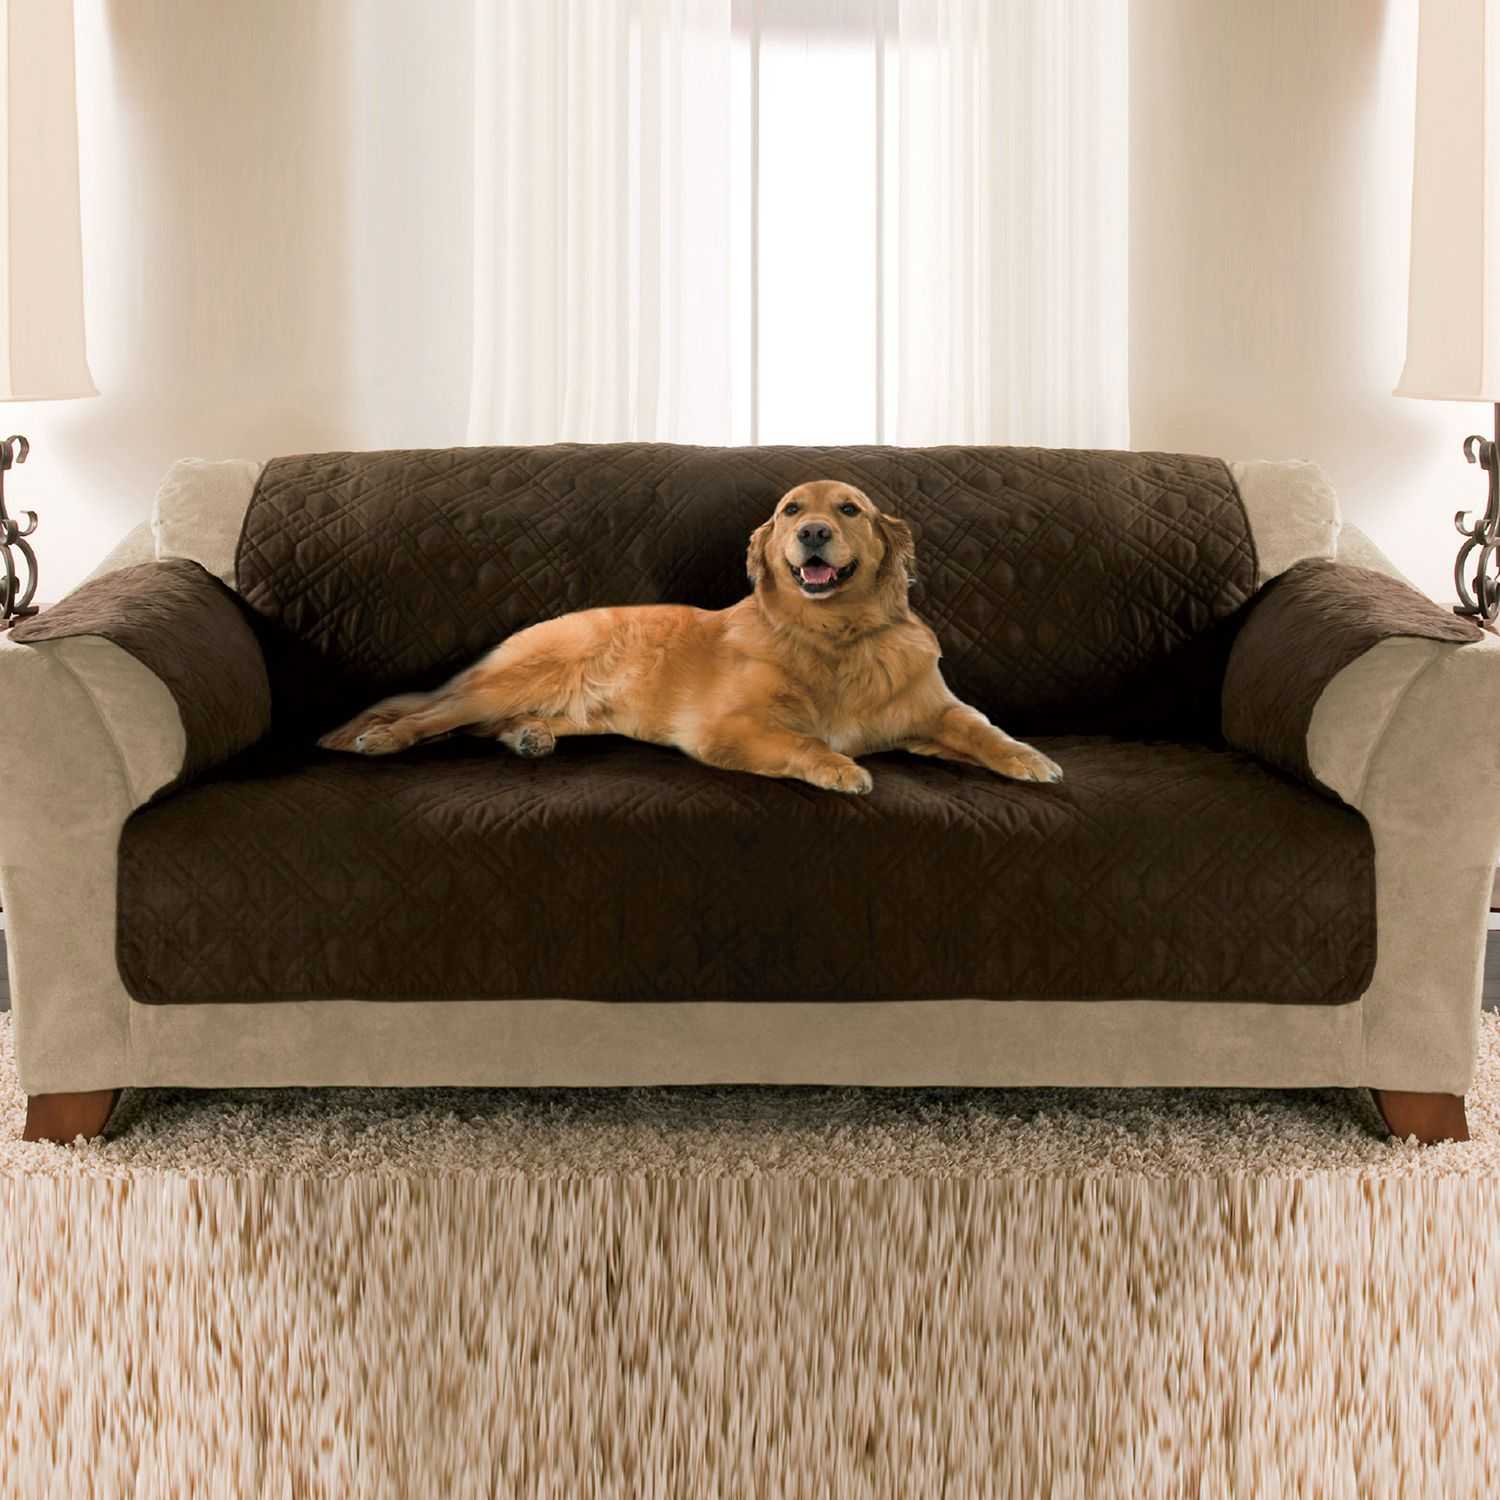 Quilted sofa pet covers